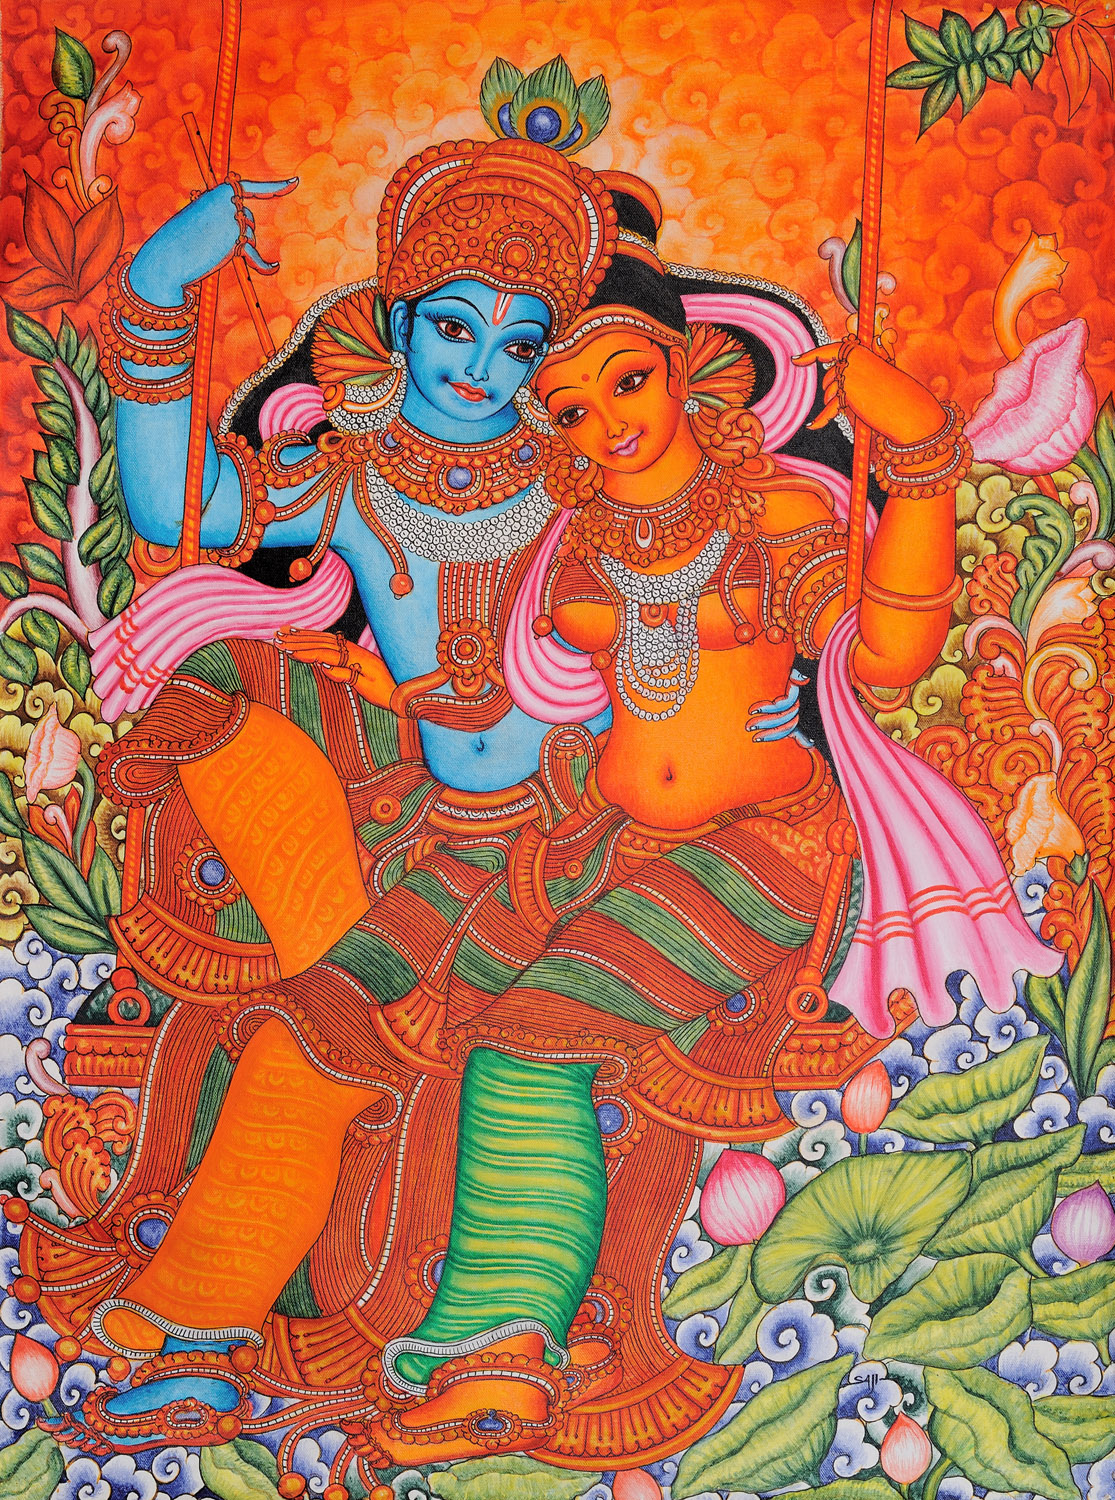 Radha and krishna on swing kerala folk style for Best mural artists